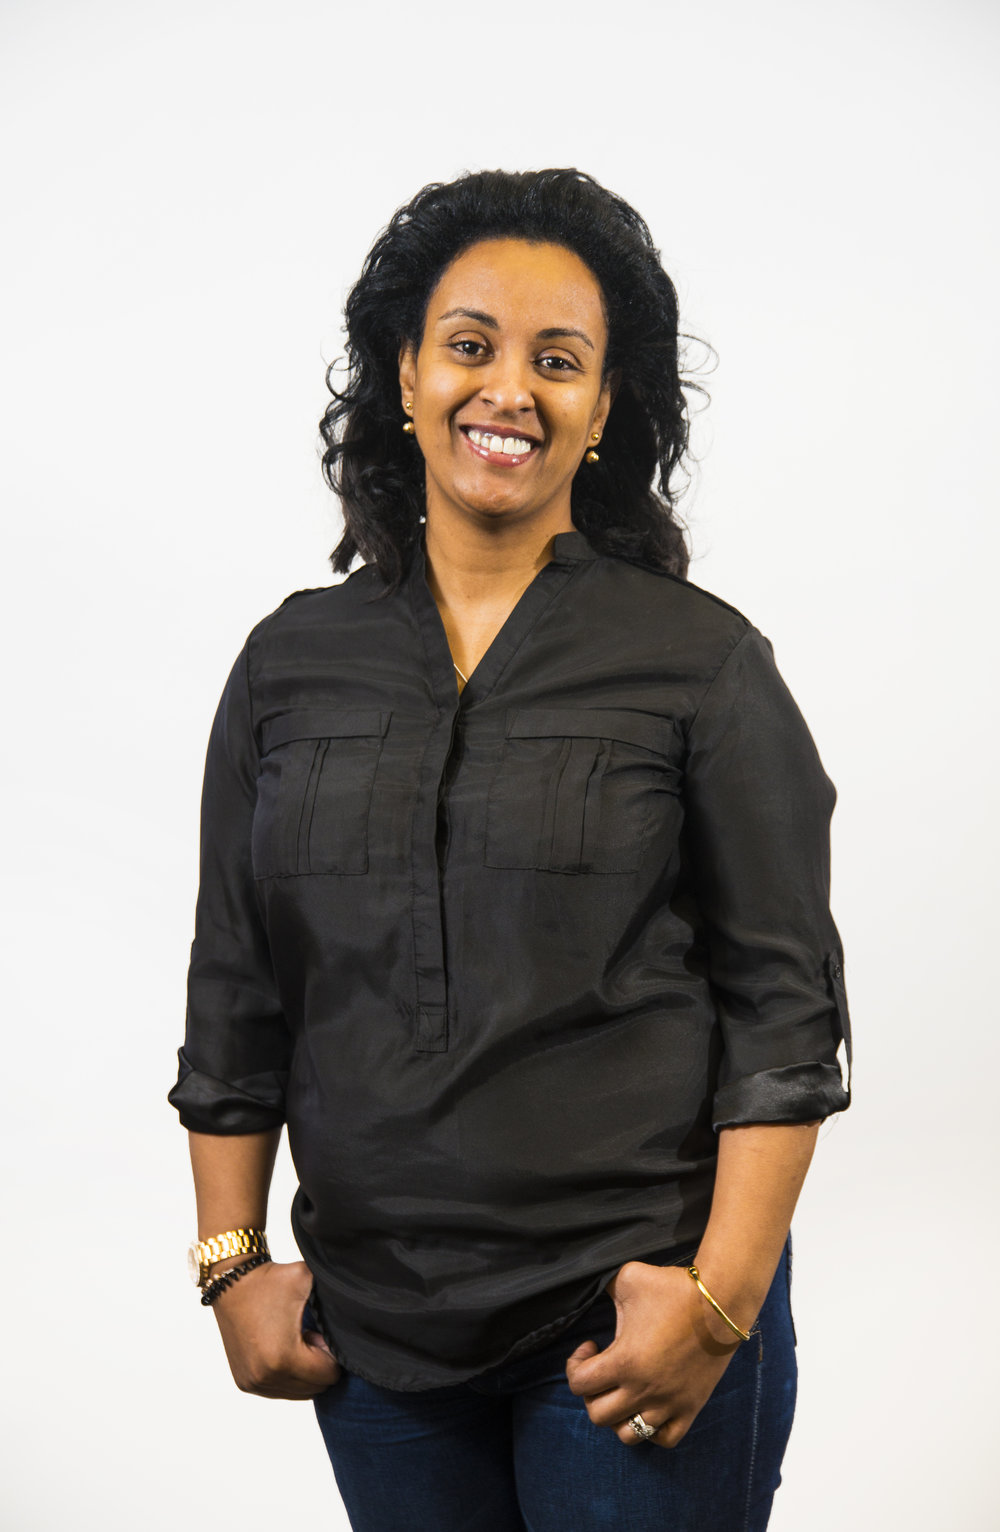 Marta Worku  (English, Amharic, Tigrinya, Italian)  Marta joined us in 2017 and works to help newcomers to Canada by providing information about the citizenship and sponsorship process, advice on accessing available community services and assistance in developing progressive plans to make a success of their new life and home in K-W.   A positive and open-minded person, Marta came to Canada in 2010 from Ethiopia and enjoys cooking, reading and writing in her spare time.